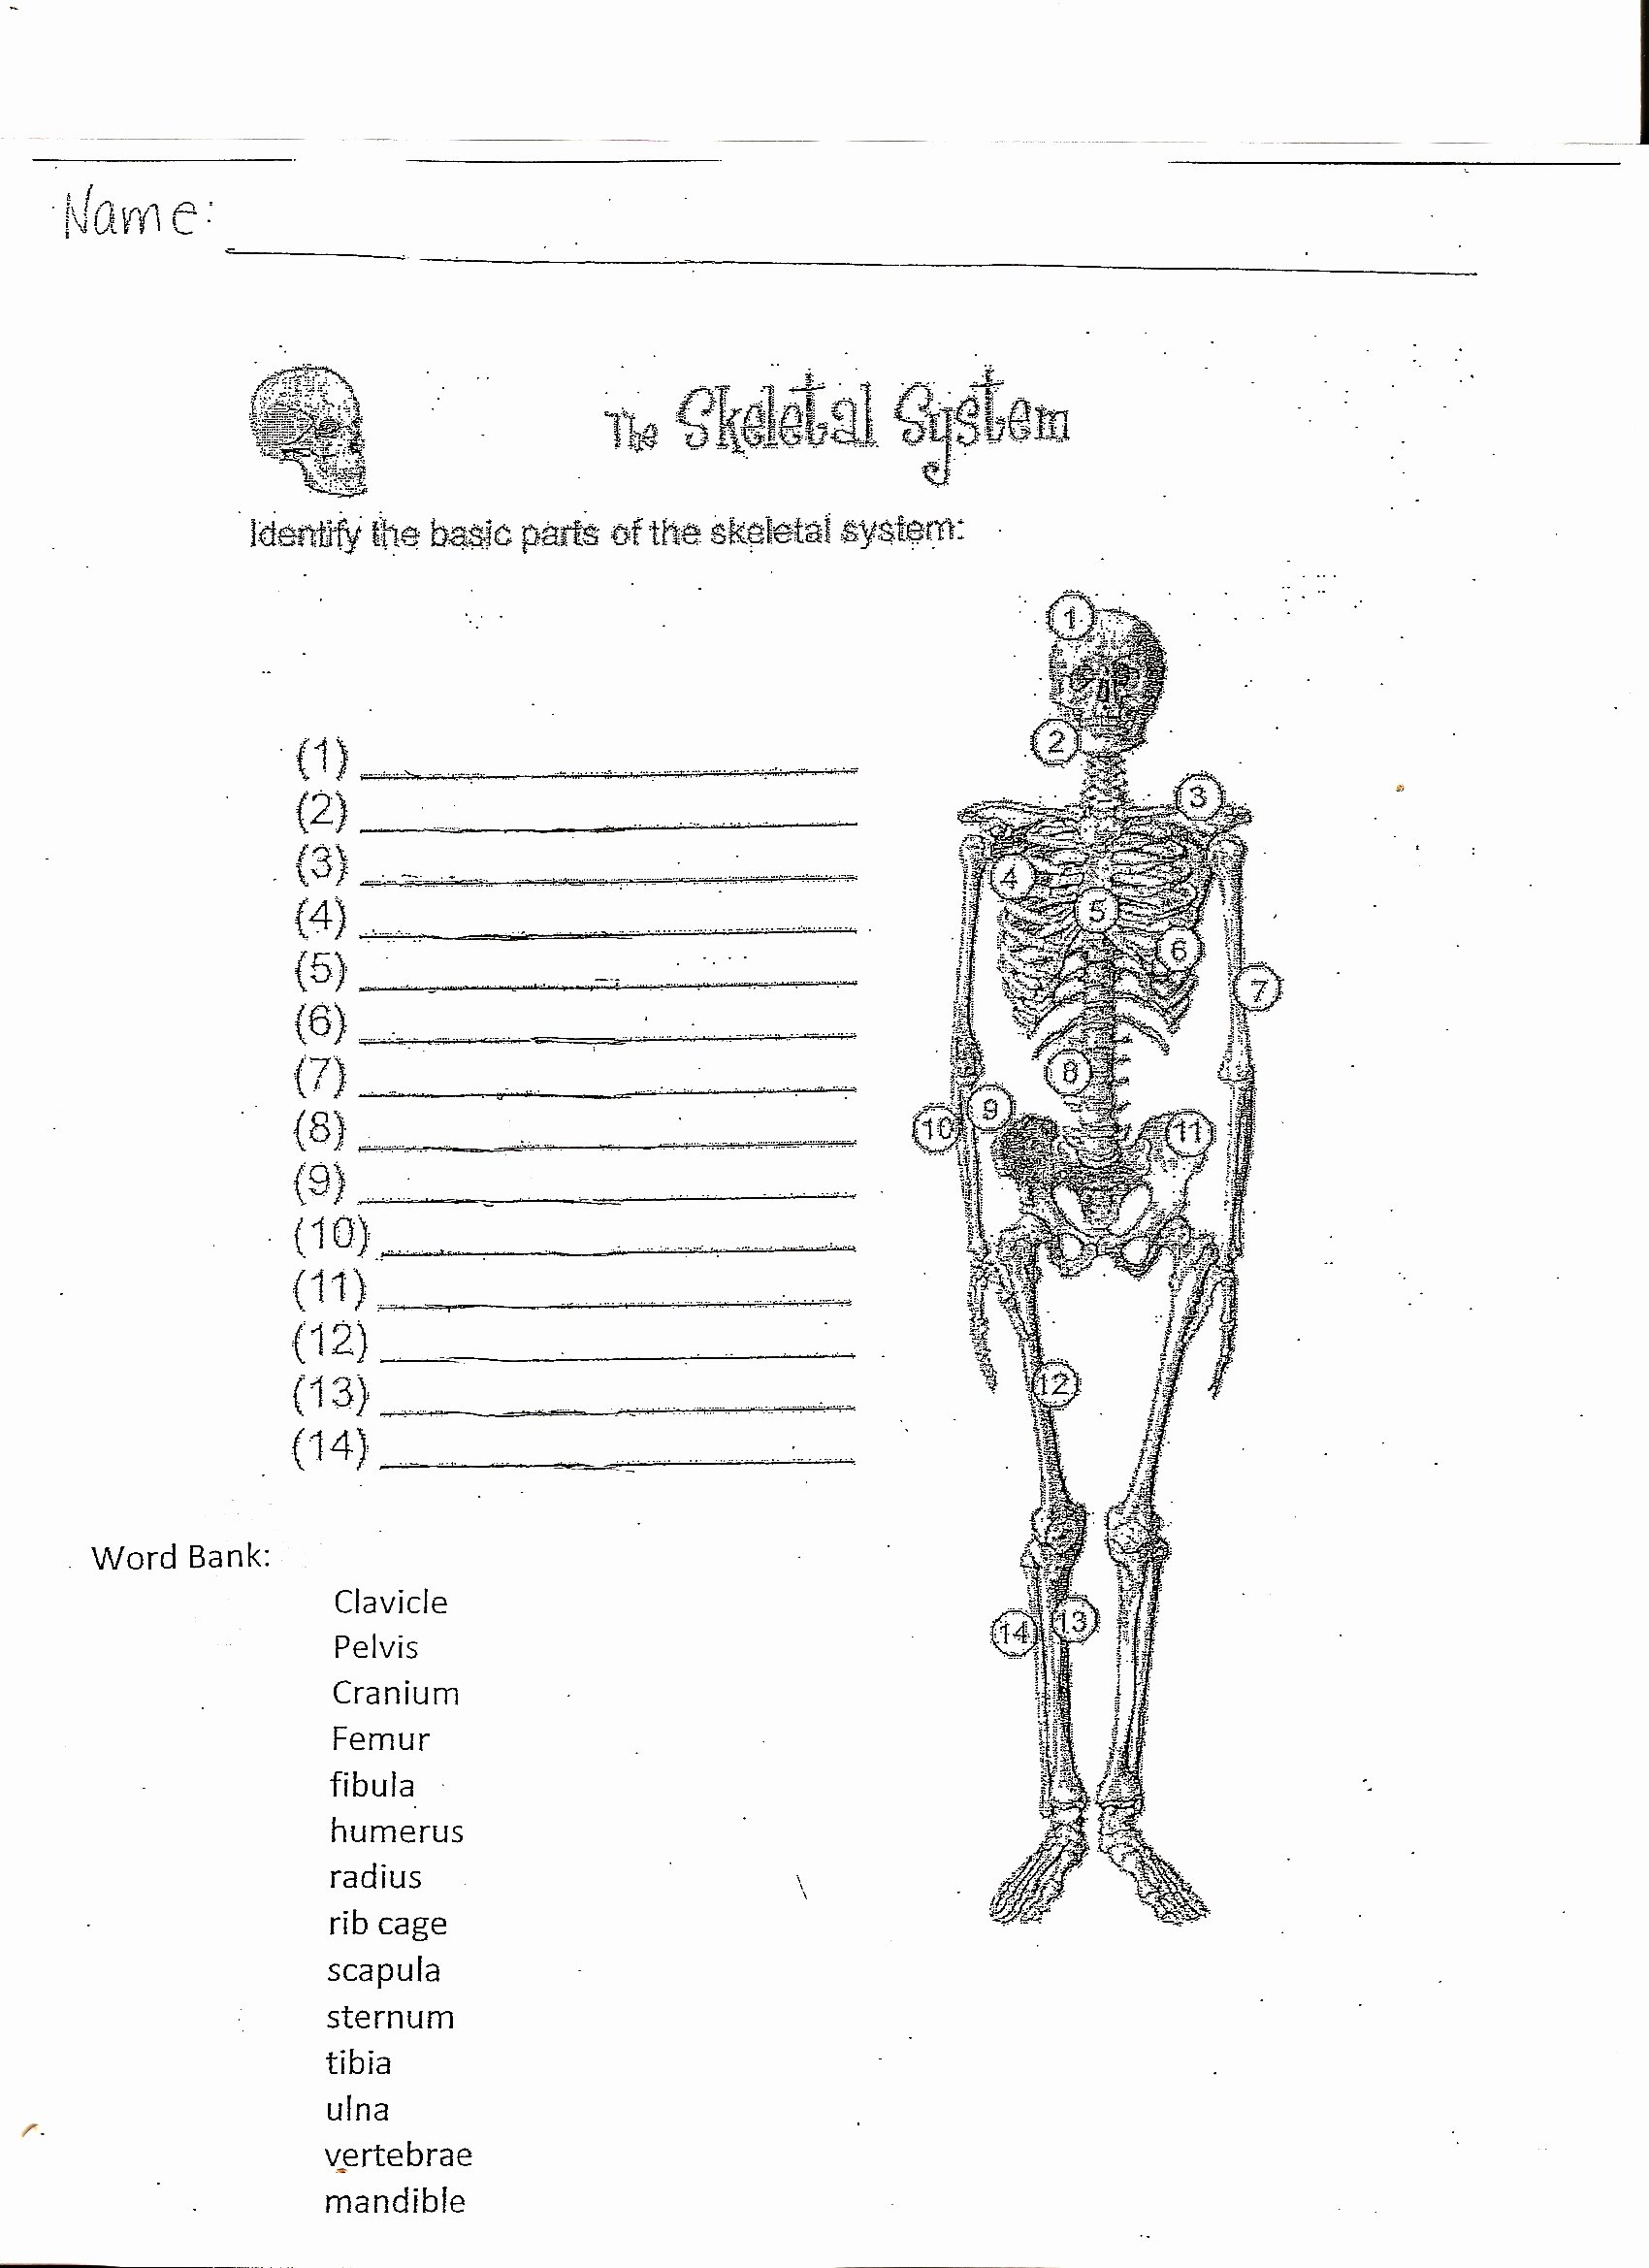 50 The Skeletal System Worksheet